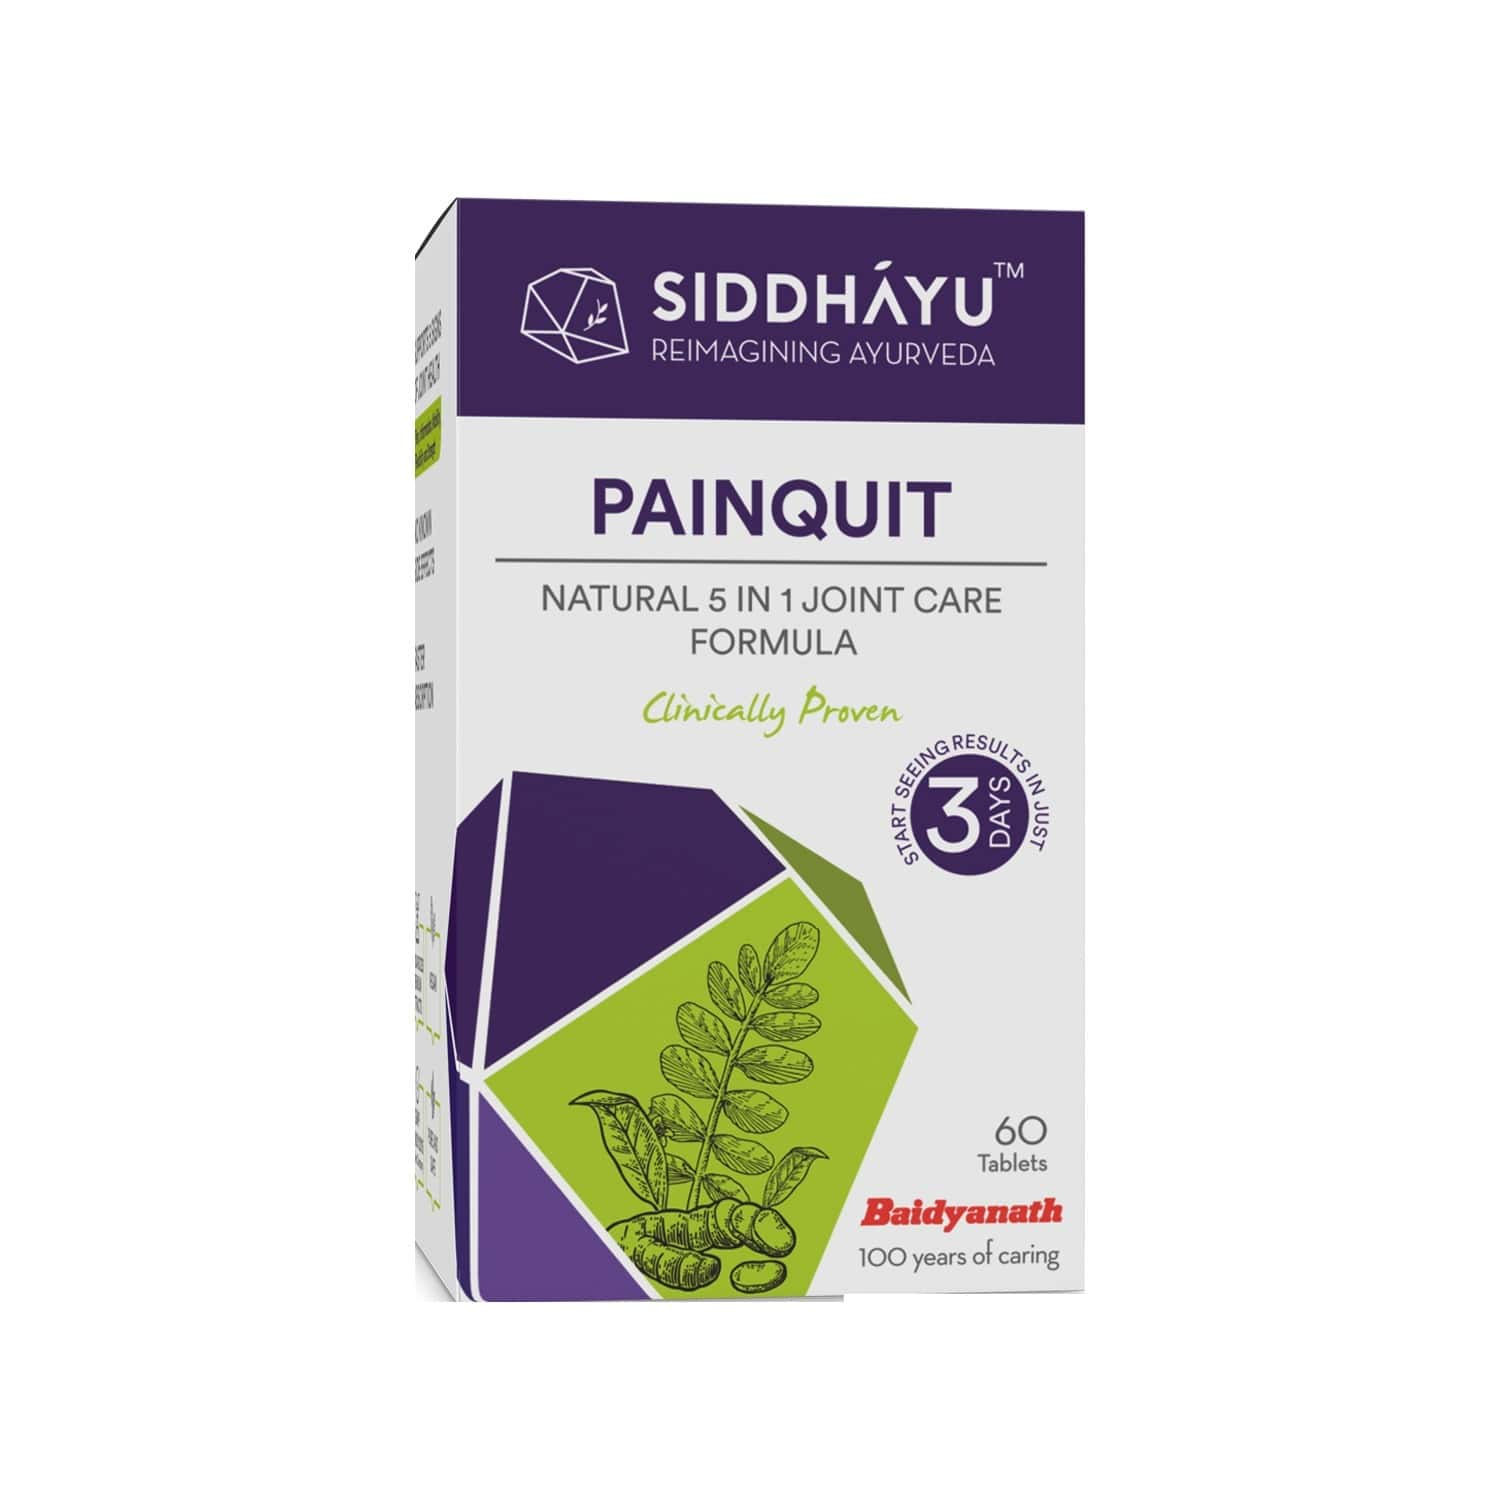 Siddhayu Painquit Tablet Pain Relief Supplement | Ayurvedic Herbal Remedy For Bones And Joints I Natural Joint Pain Relief Capsules I Arthritis Pain | 60 Tablets X 1